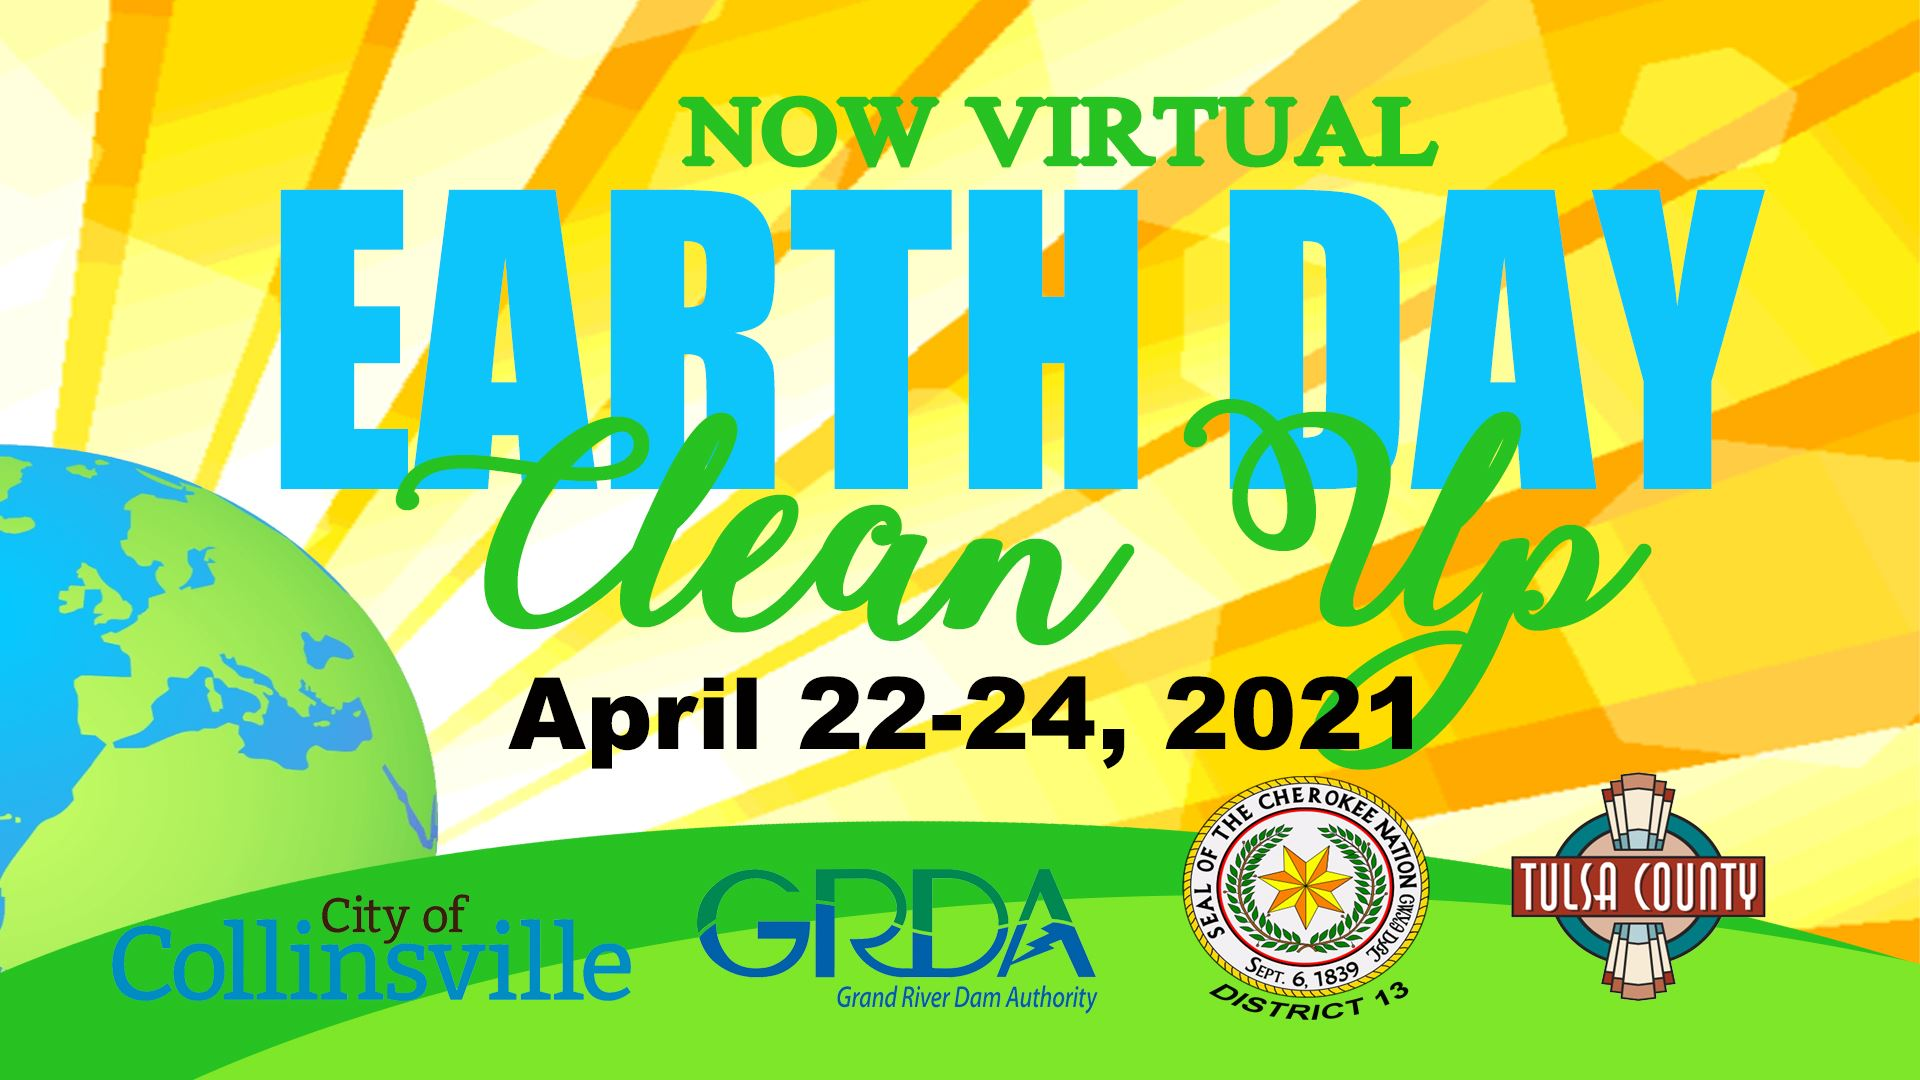 Virtual Earth Day Clean Up